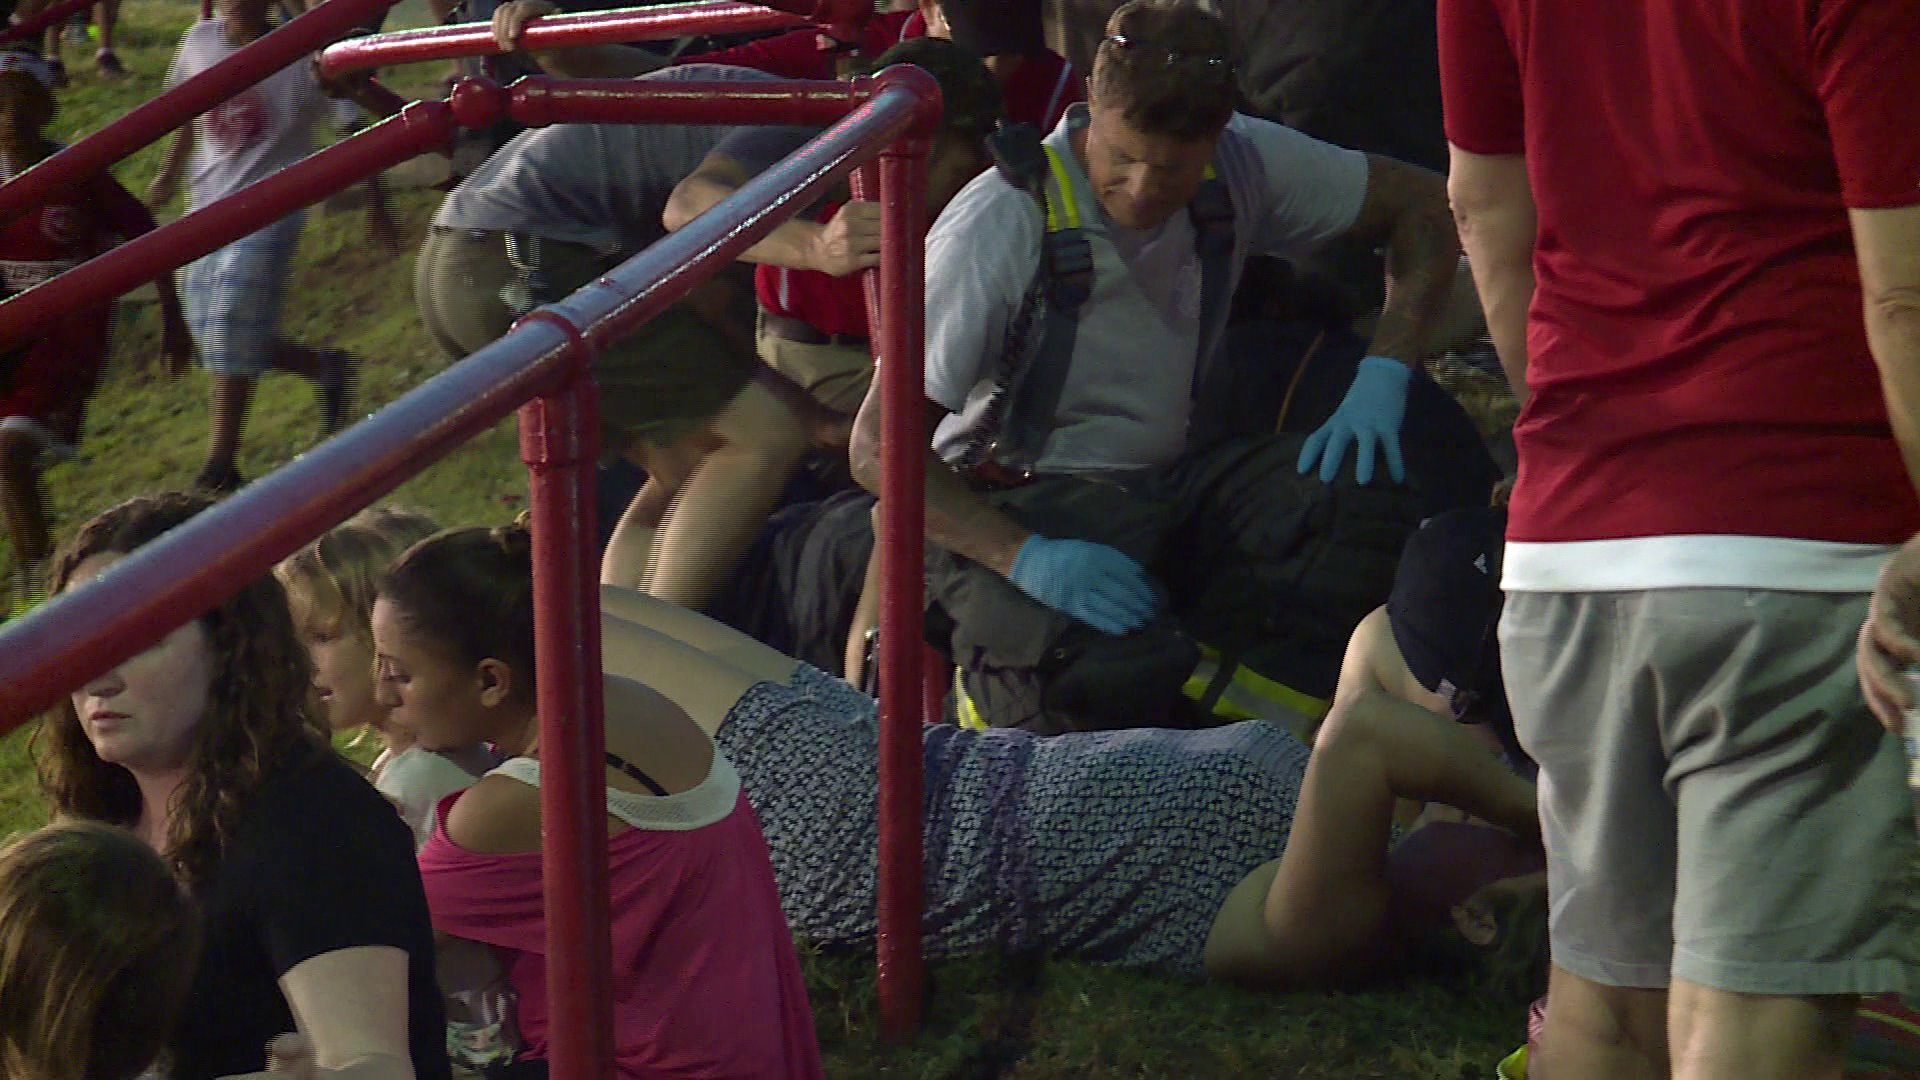 Photos: 2 fans pinned by car at Richmond Kickers game